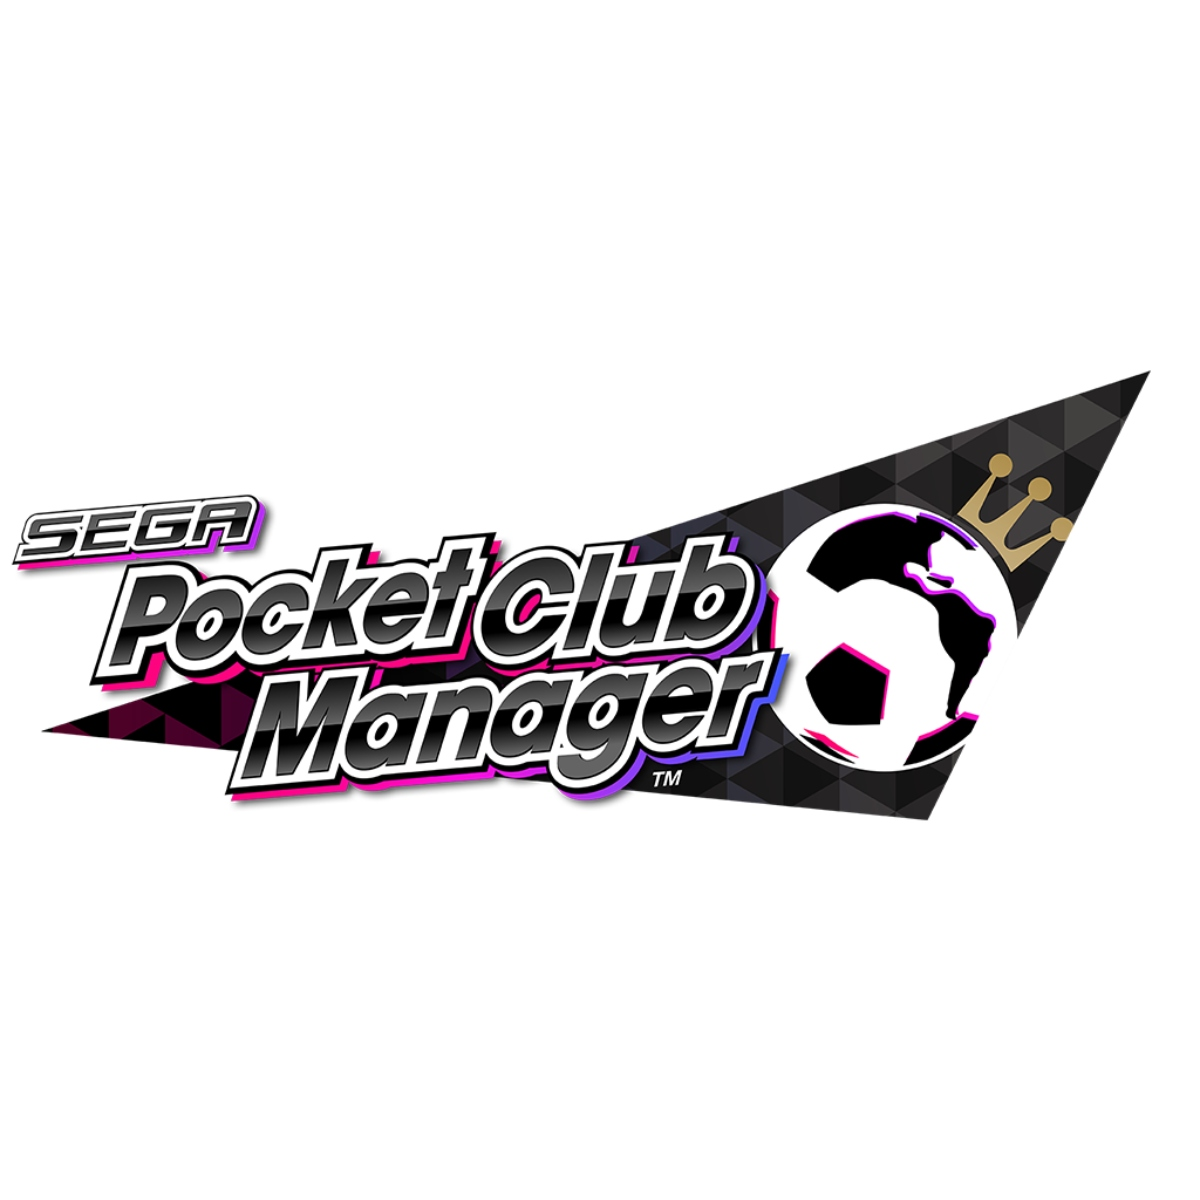 SEGA Pocket Club Manager icon